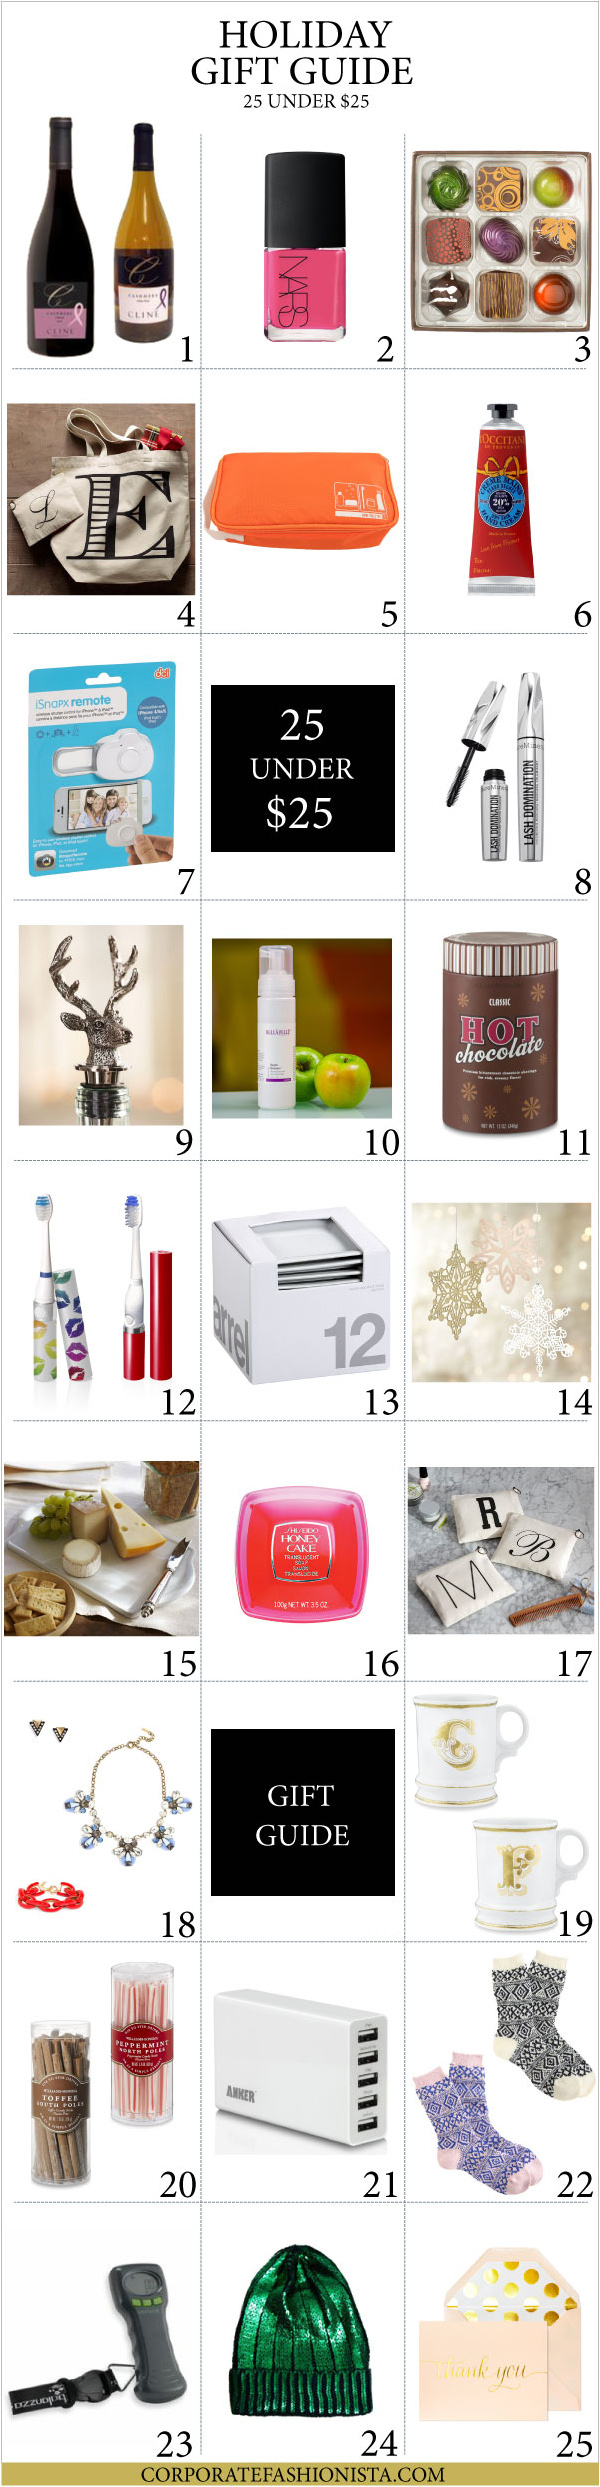 Holiday Gift Guide: 25 Under $25 | CorporateFashionista.com